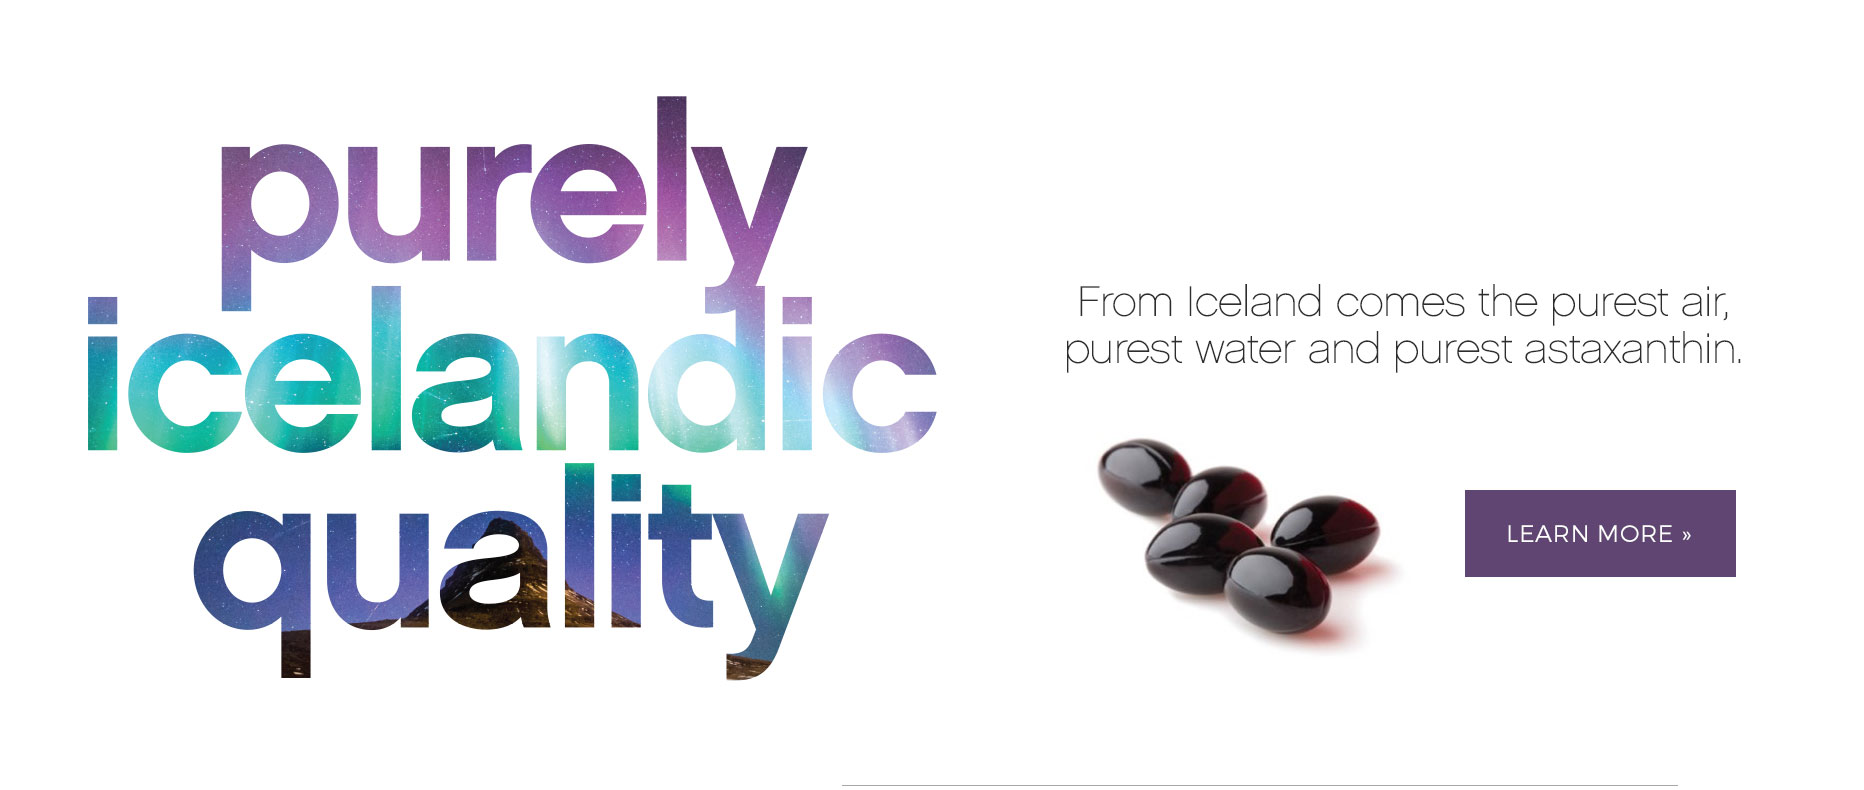 Purely Icelandic Quality - Learn More